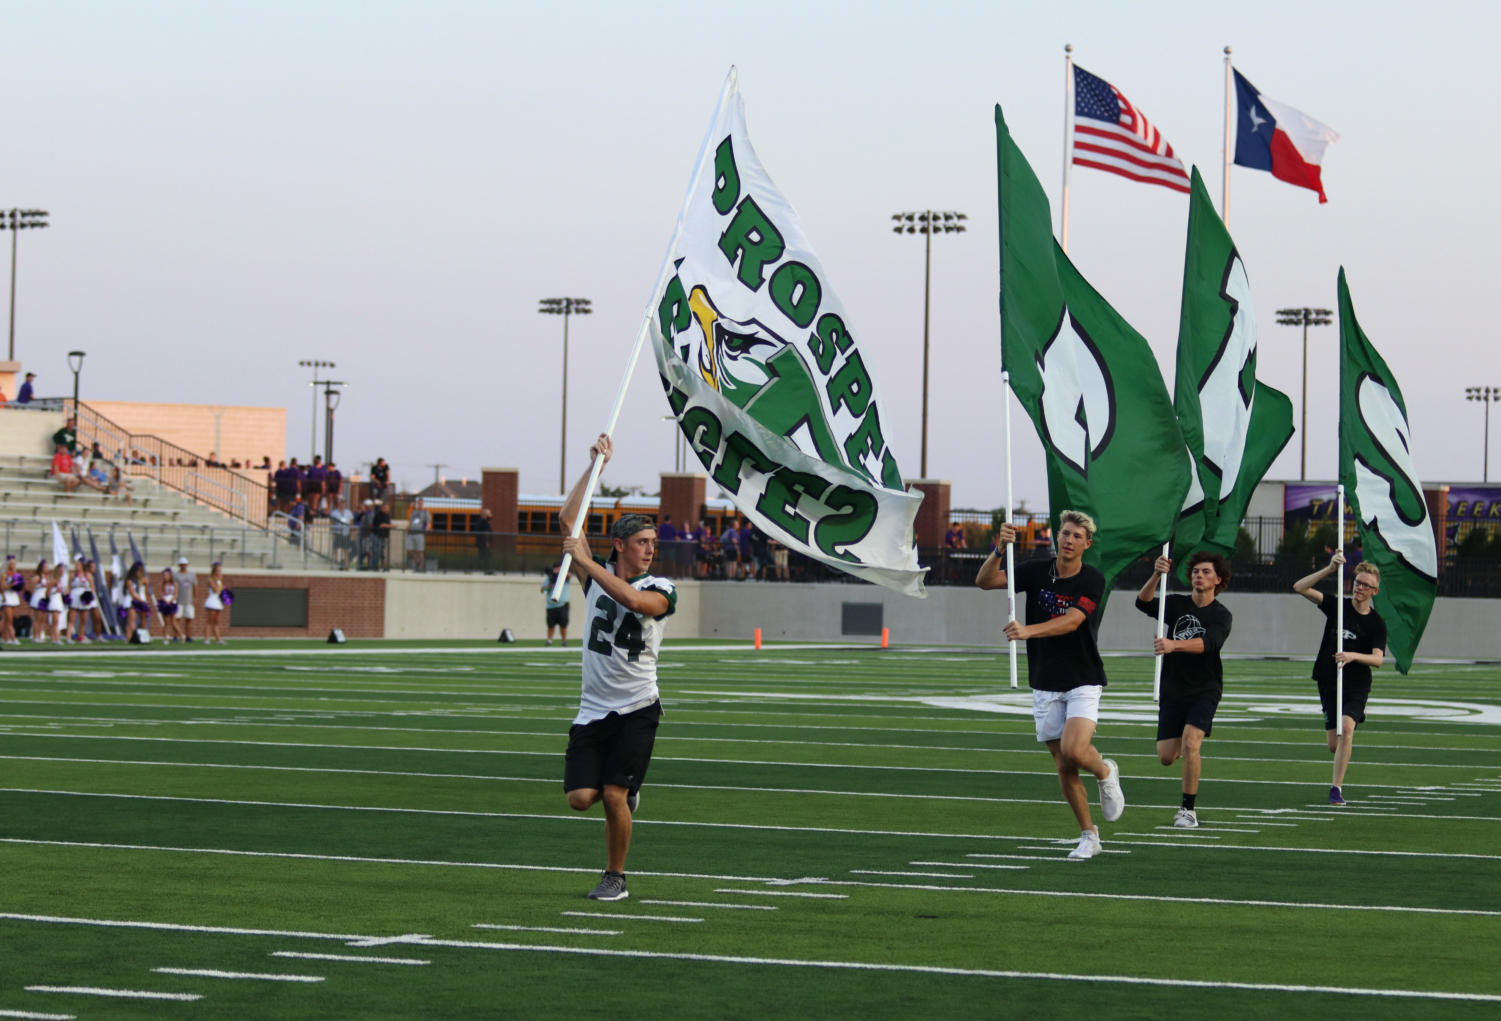 Flag+runners+run+across+the+field+with+PHS+flags+after+a+touchdown+scored+by+Tyler+Bailey%2C+No.+4.+The+boys+race+across+end+zone+to+end+zone+to+celebrate+points+put+on+the+scoreboard.+Afterwards%2C+spirit+leaders+do+as+many+push+ups+as+points+scored+alongside+superintendent+Drew+Watkins.